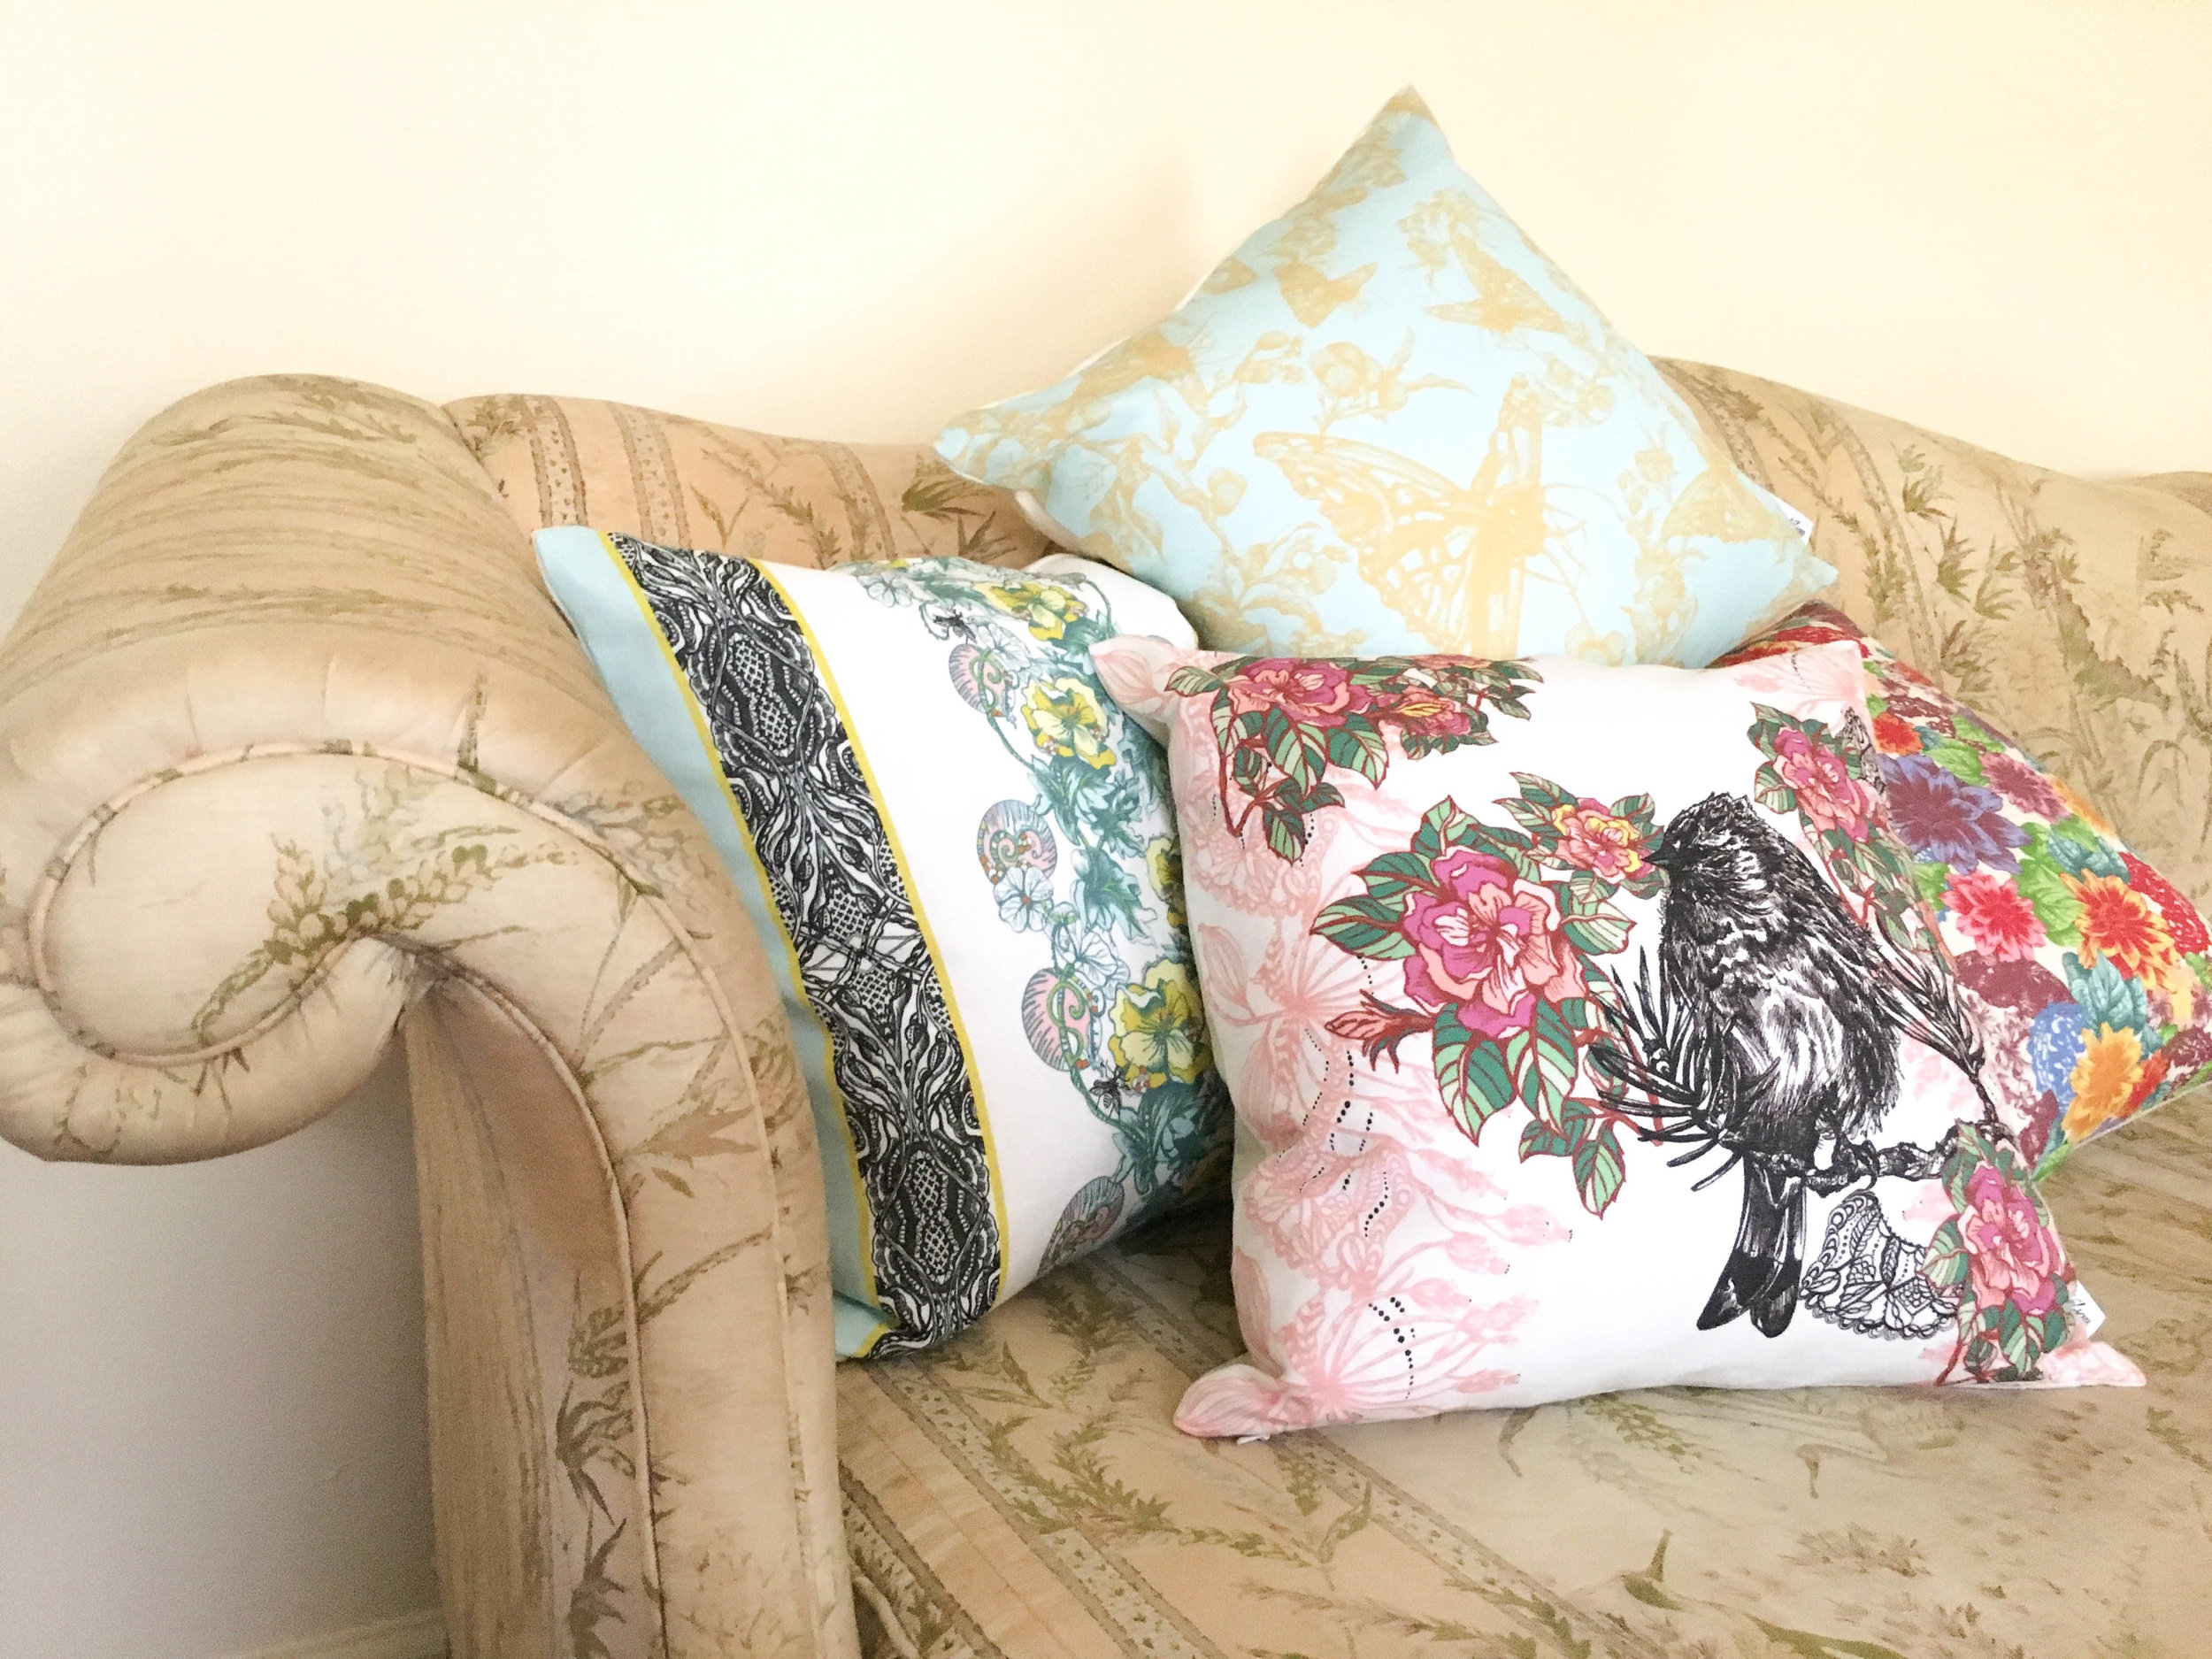 Acanthis Pillow, Cynthia Pillow, and Celandine Pillow piled on edge of a couch